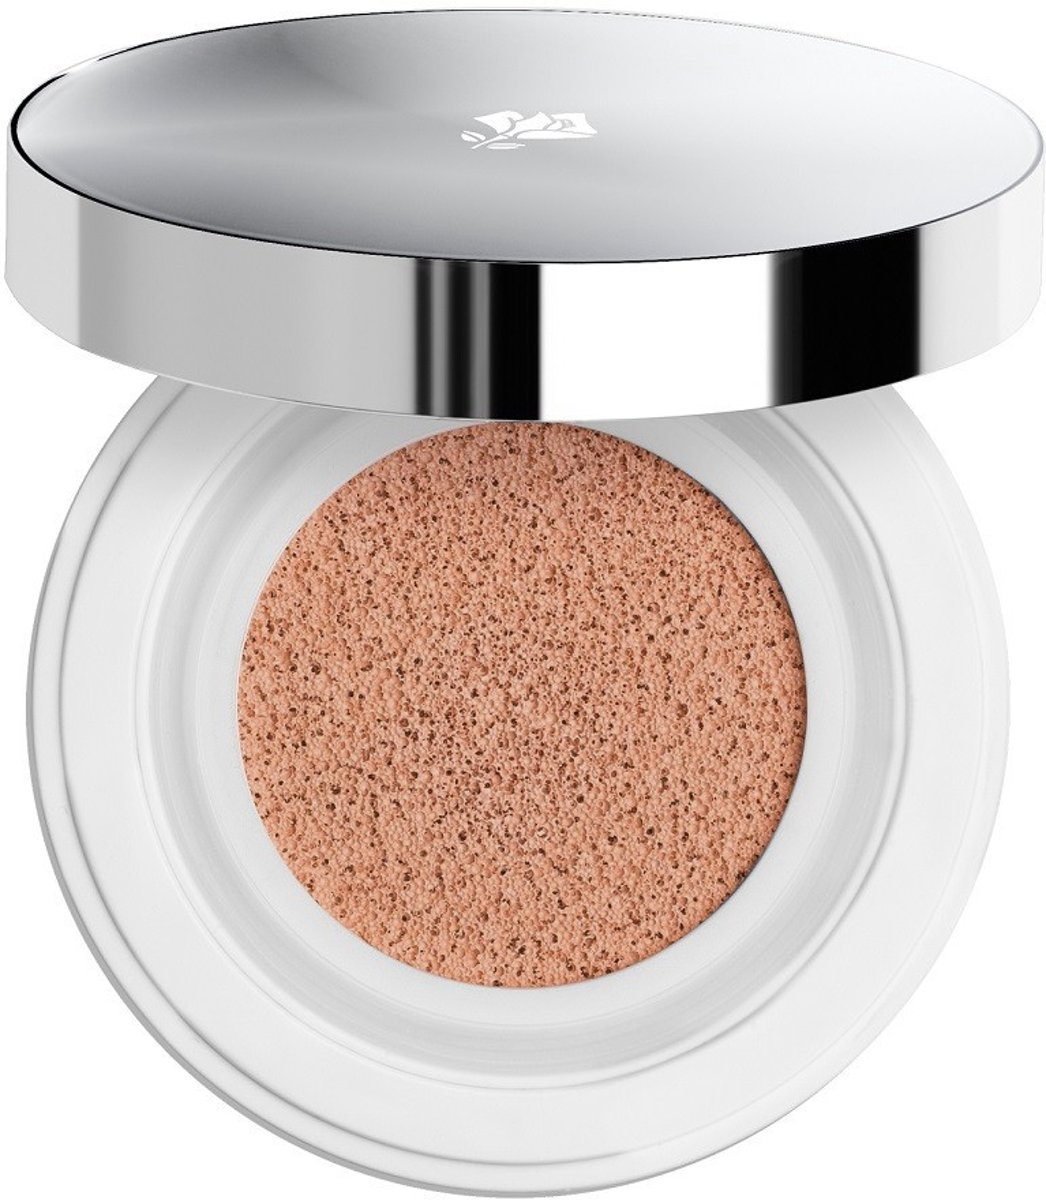 Lancôme Teint Miracle Cushion Compact Foundation 14 gr